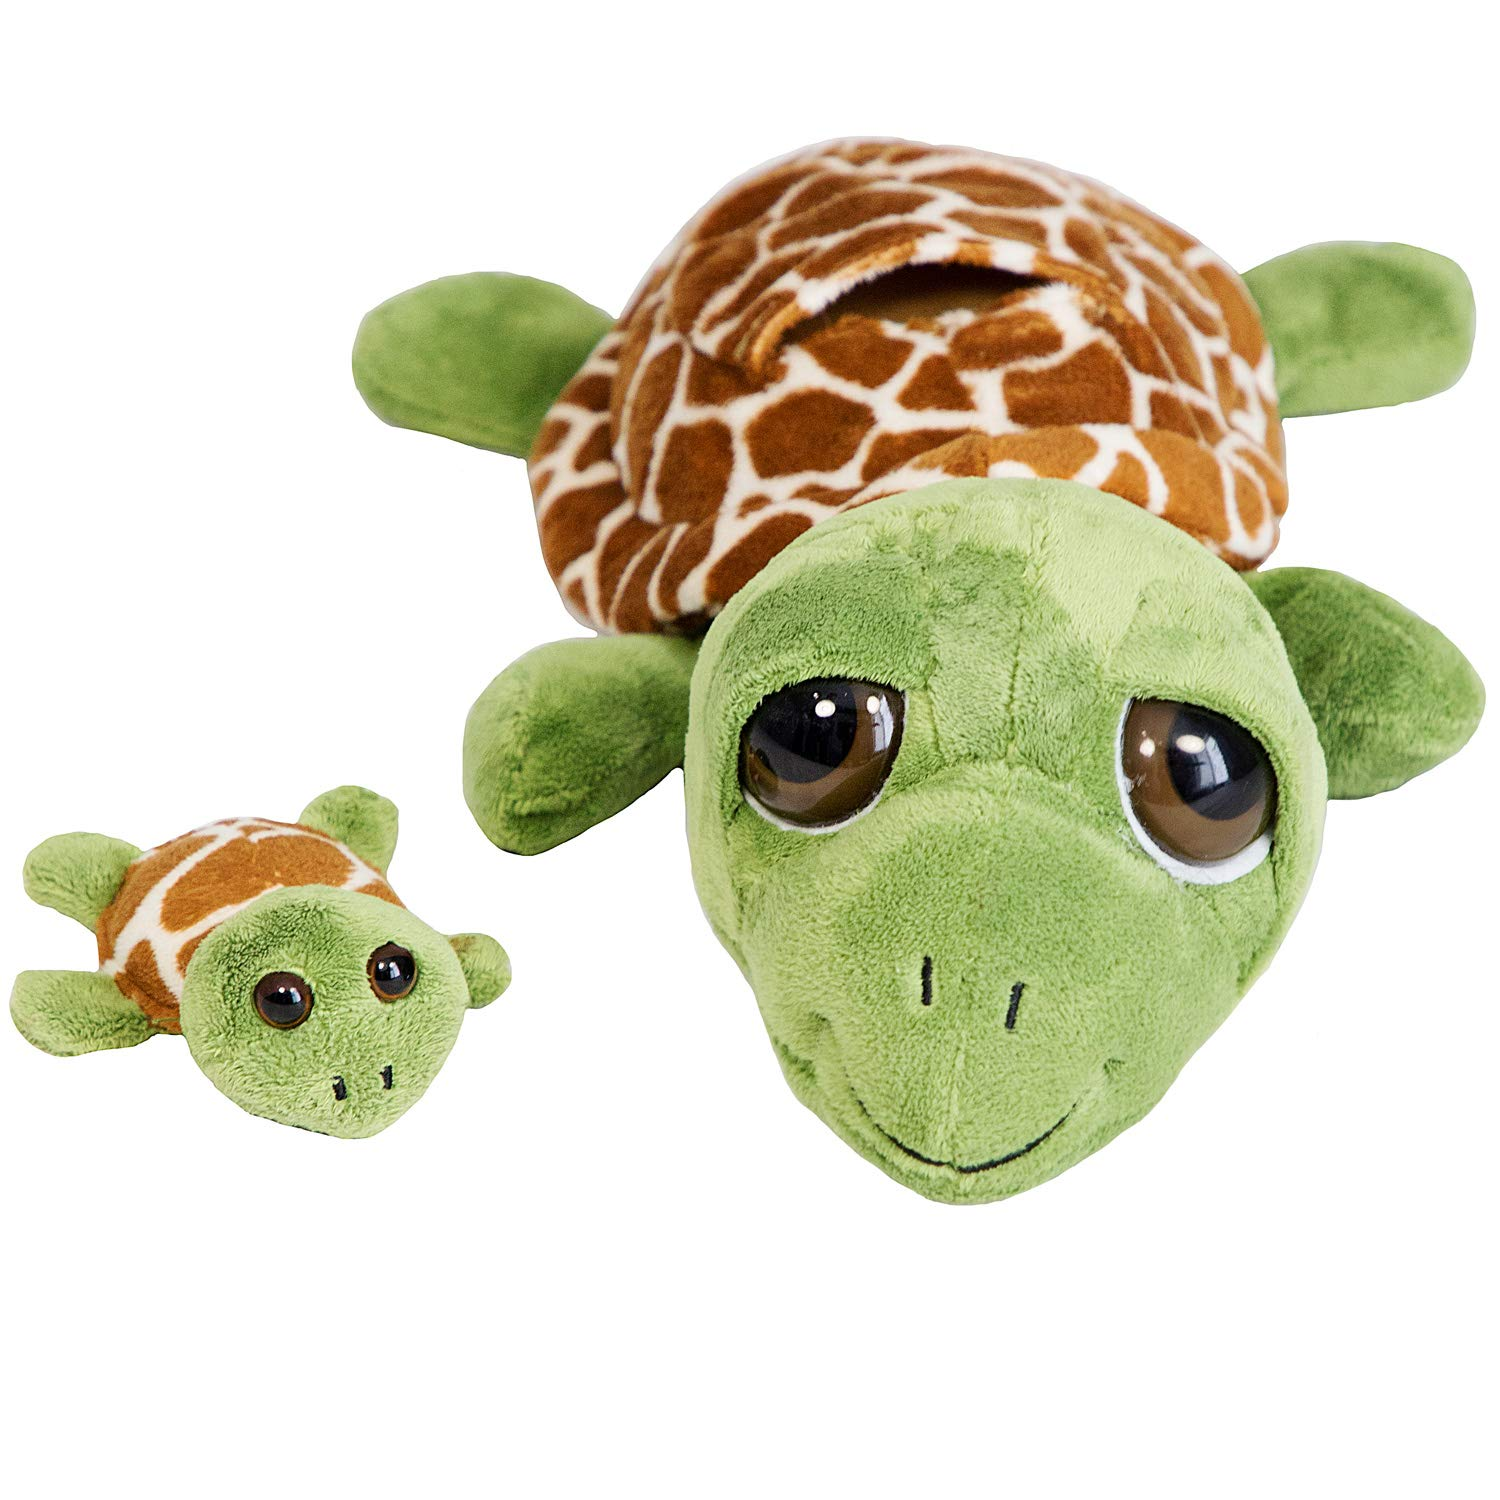 "The Petting Zoo -Bright Eyes 10"" Pocketz Mom & Baby Turtle - Stuffed Animal Toy - Great for Baby/Toddlers/Kids - Boys & Girls"